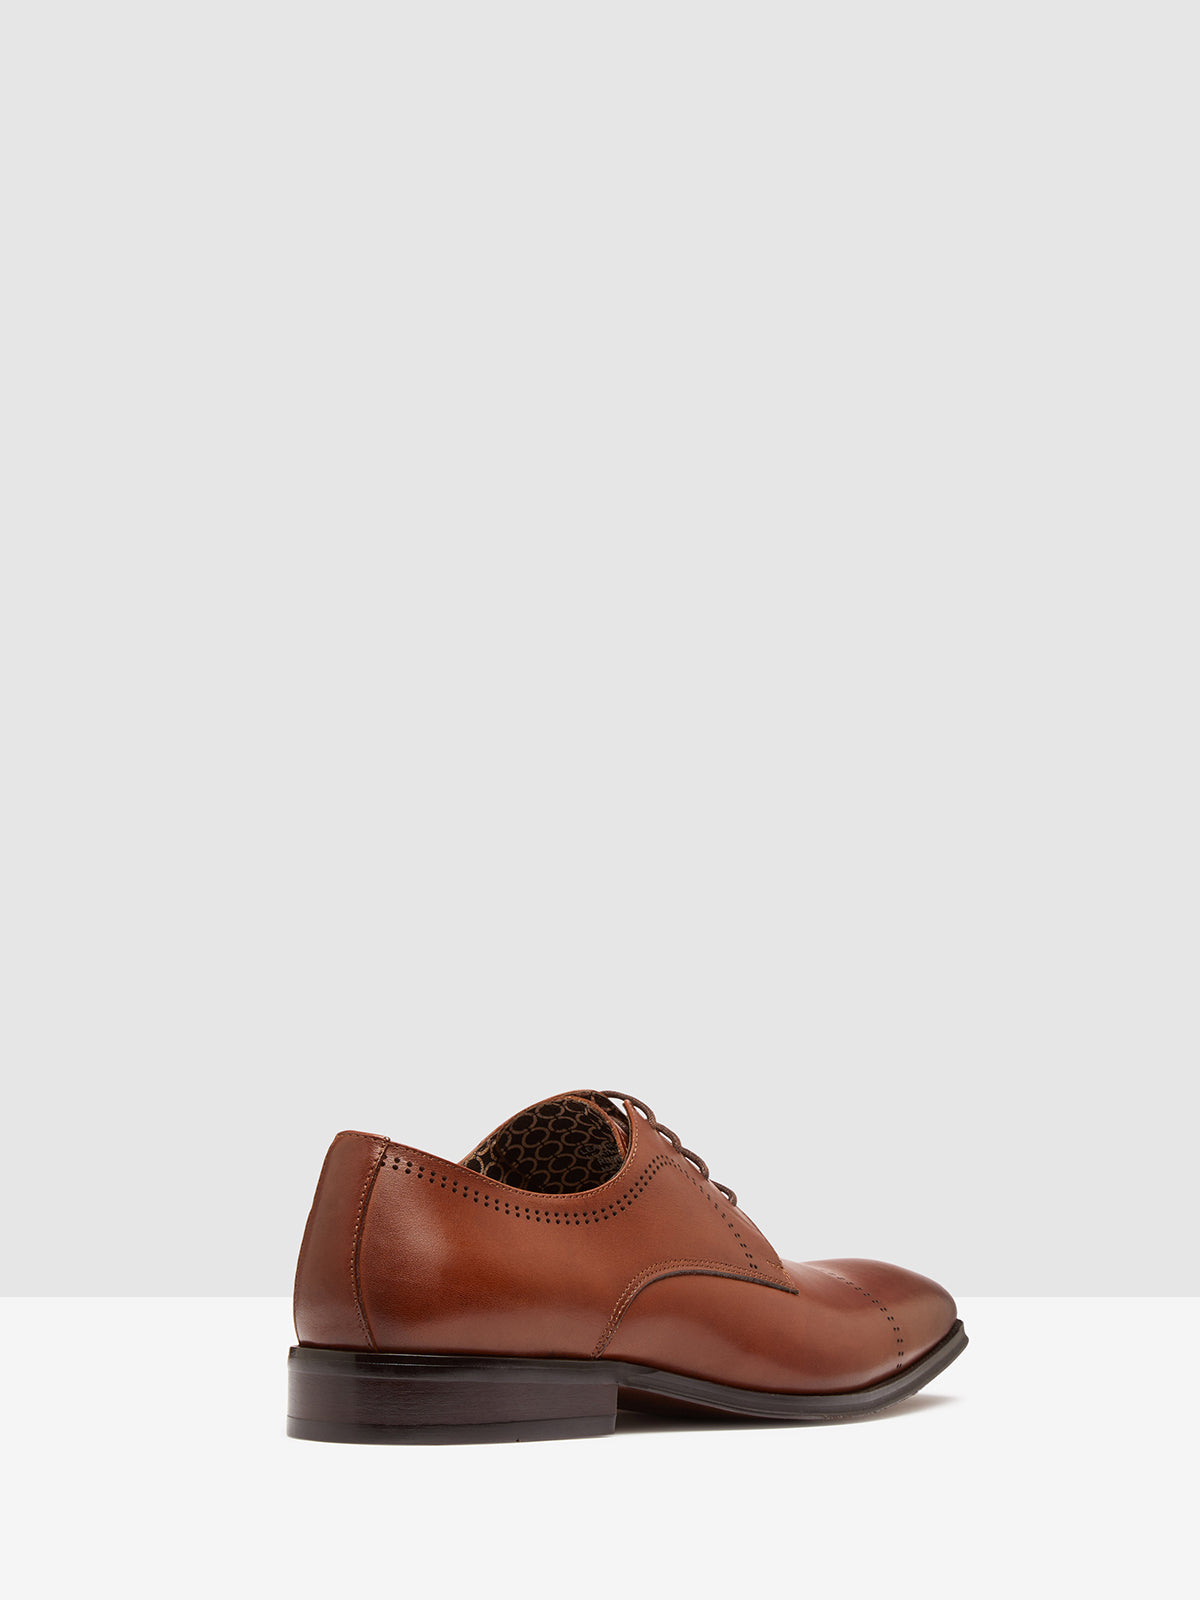 ANTONIO DARBY PUNCH HOLE SHOE